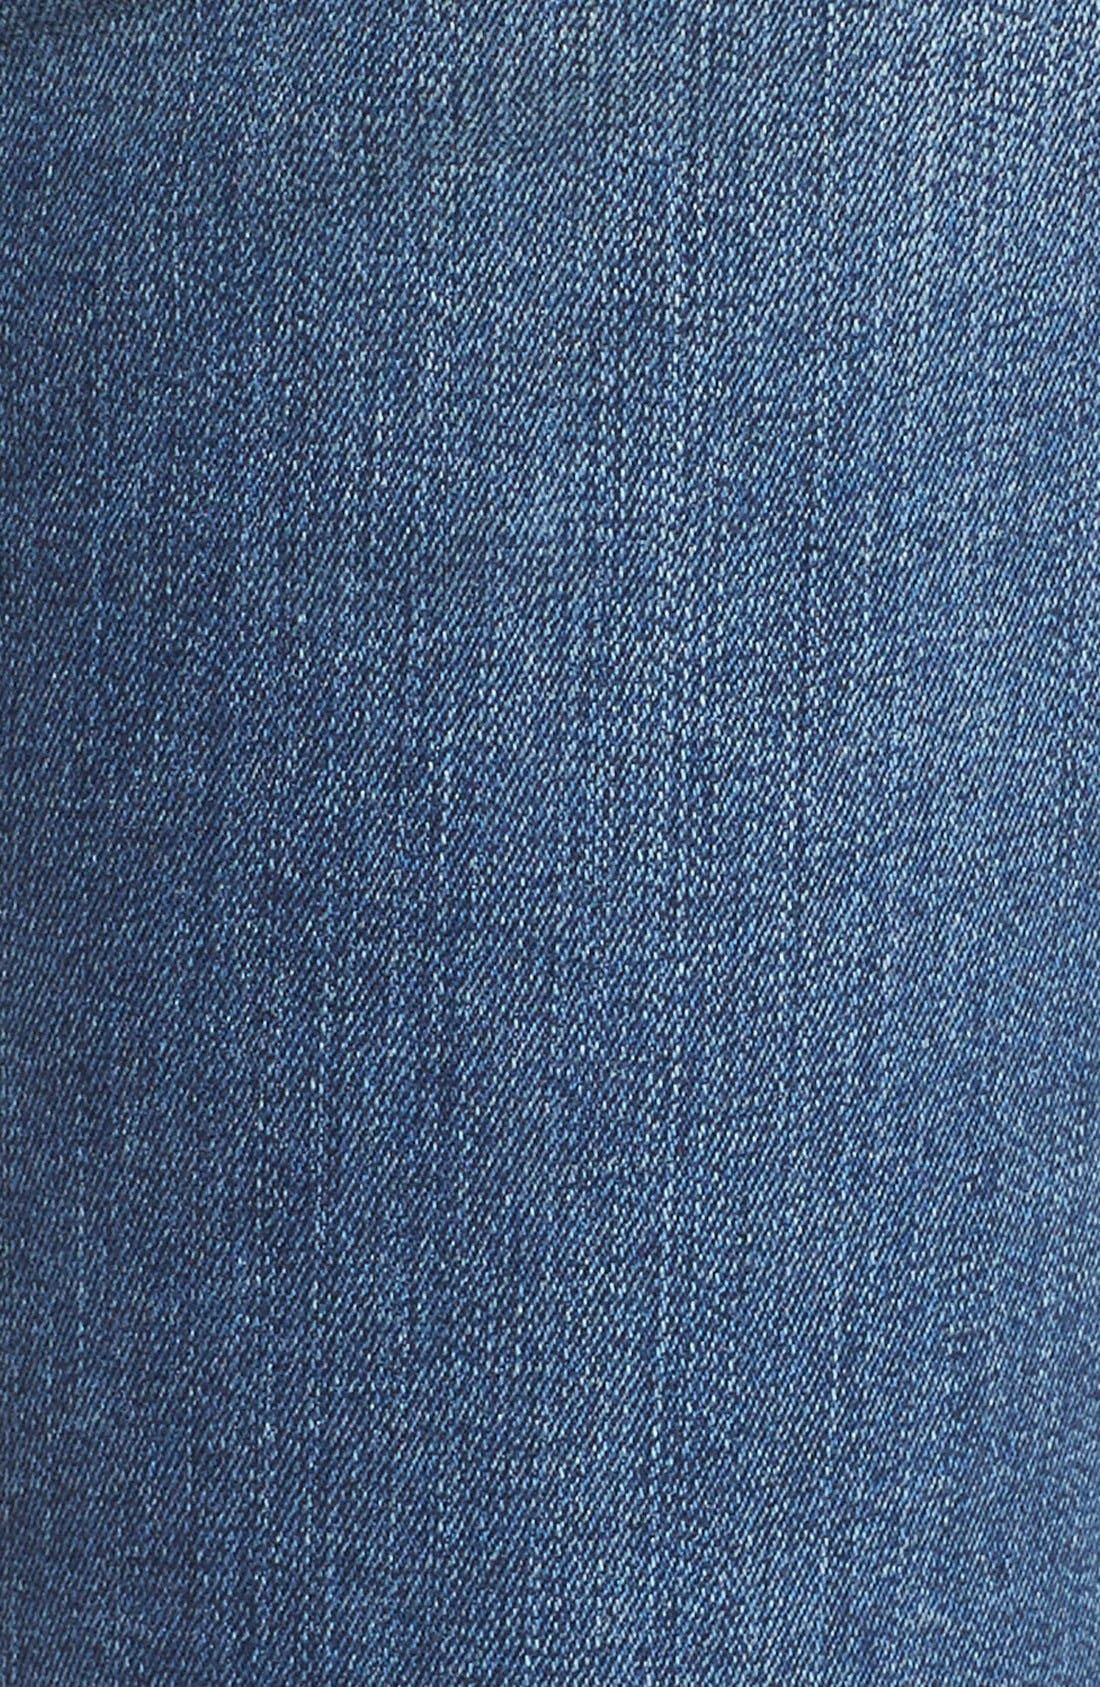 'Clarissa' Stretch Ankle Skinny Jeans,                             Alternate thumbnail 5, color,                             Heyburn